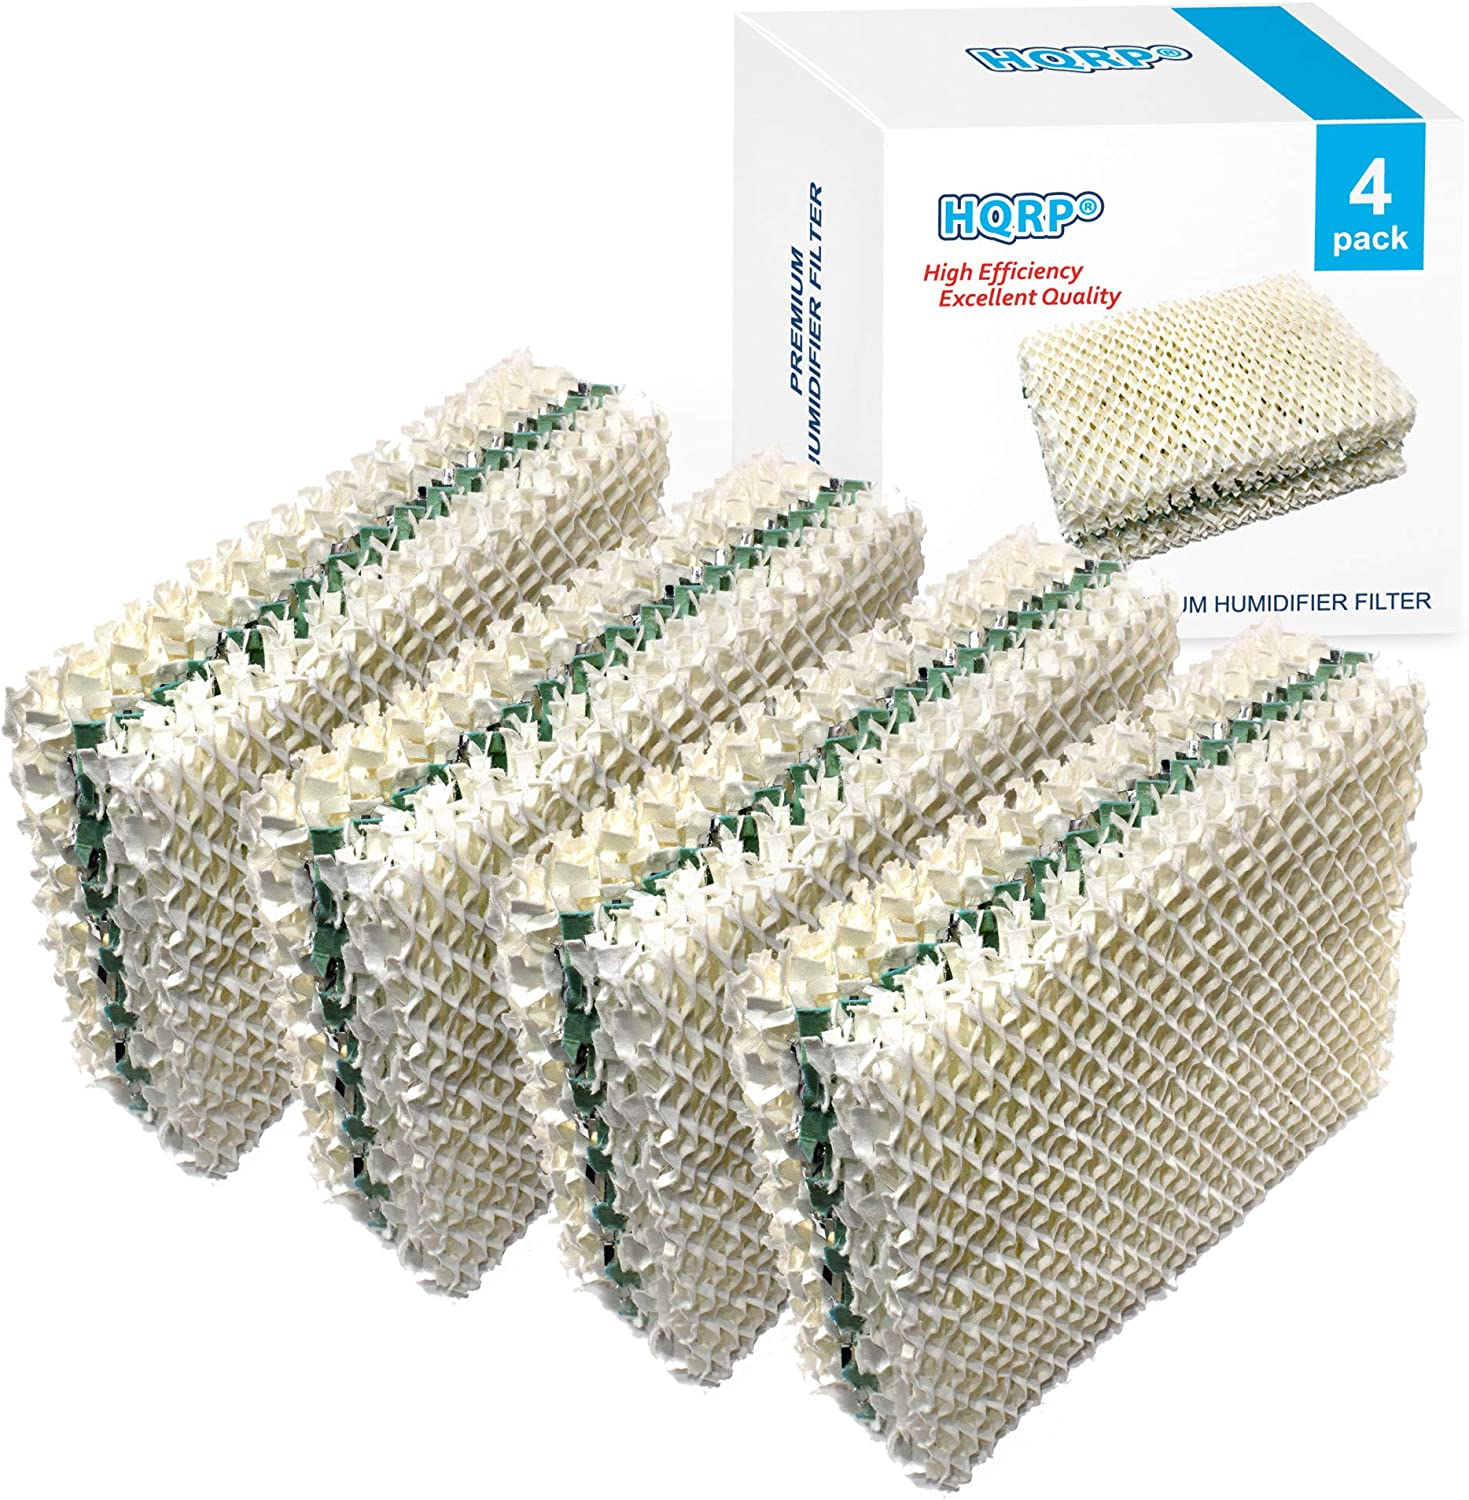 HQRP Wick Filter Compatible with Essick Air AIRCARE HDC12 / HDC-12 Replacement for EA1407 / HD1409 Evaporative Humidifier, 4-Pack